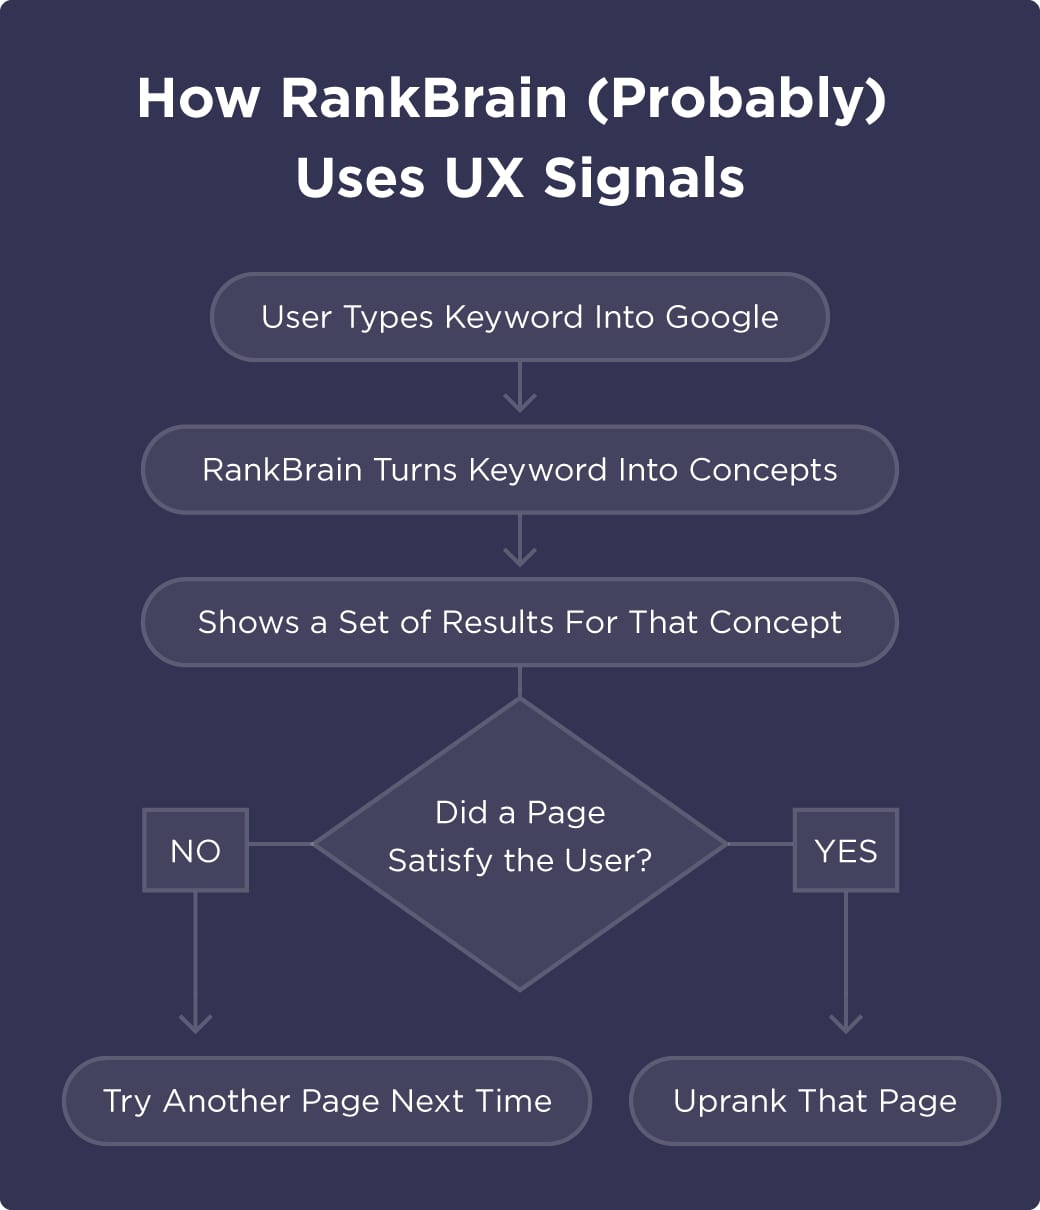 2_7_rankbrain-uses-ux-signals